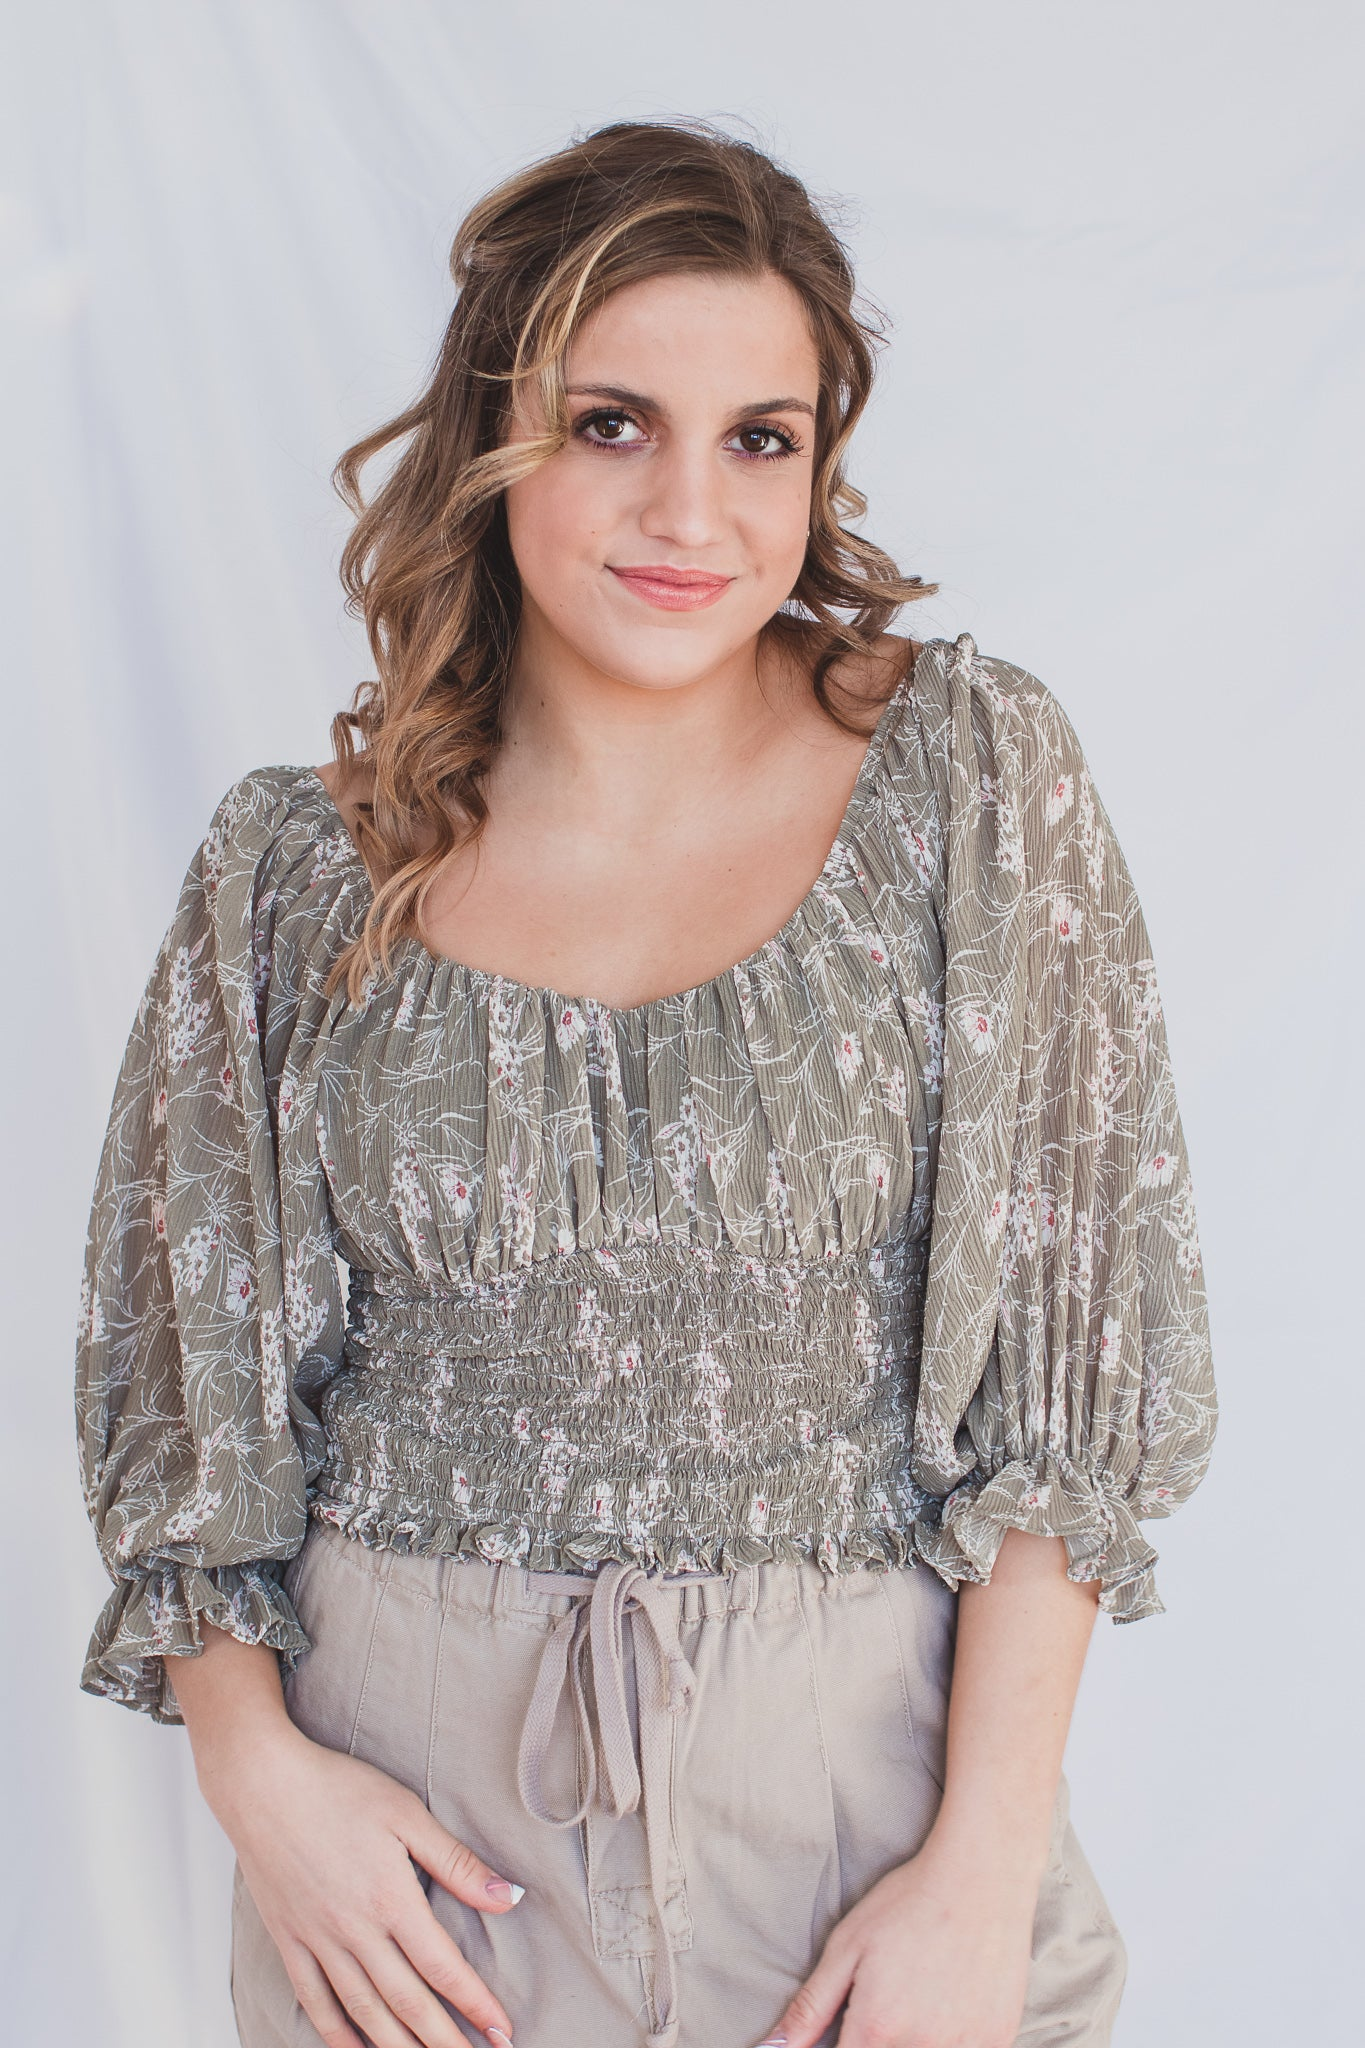 Christmas Tree Farm Graphic Tee 2 - JQ Clothing Co. - Oakes, ND